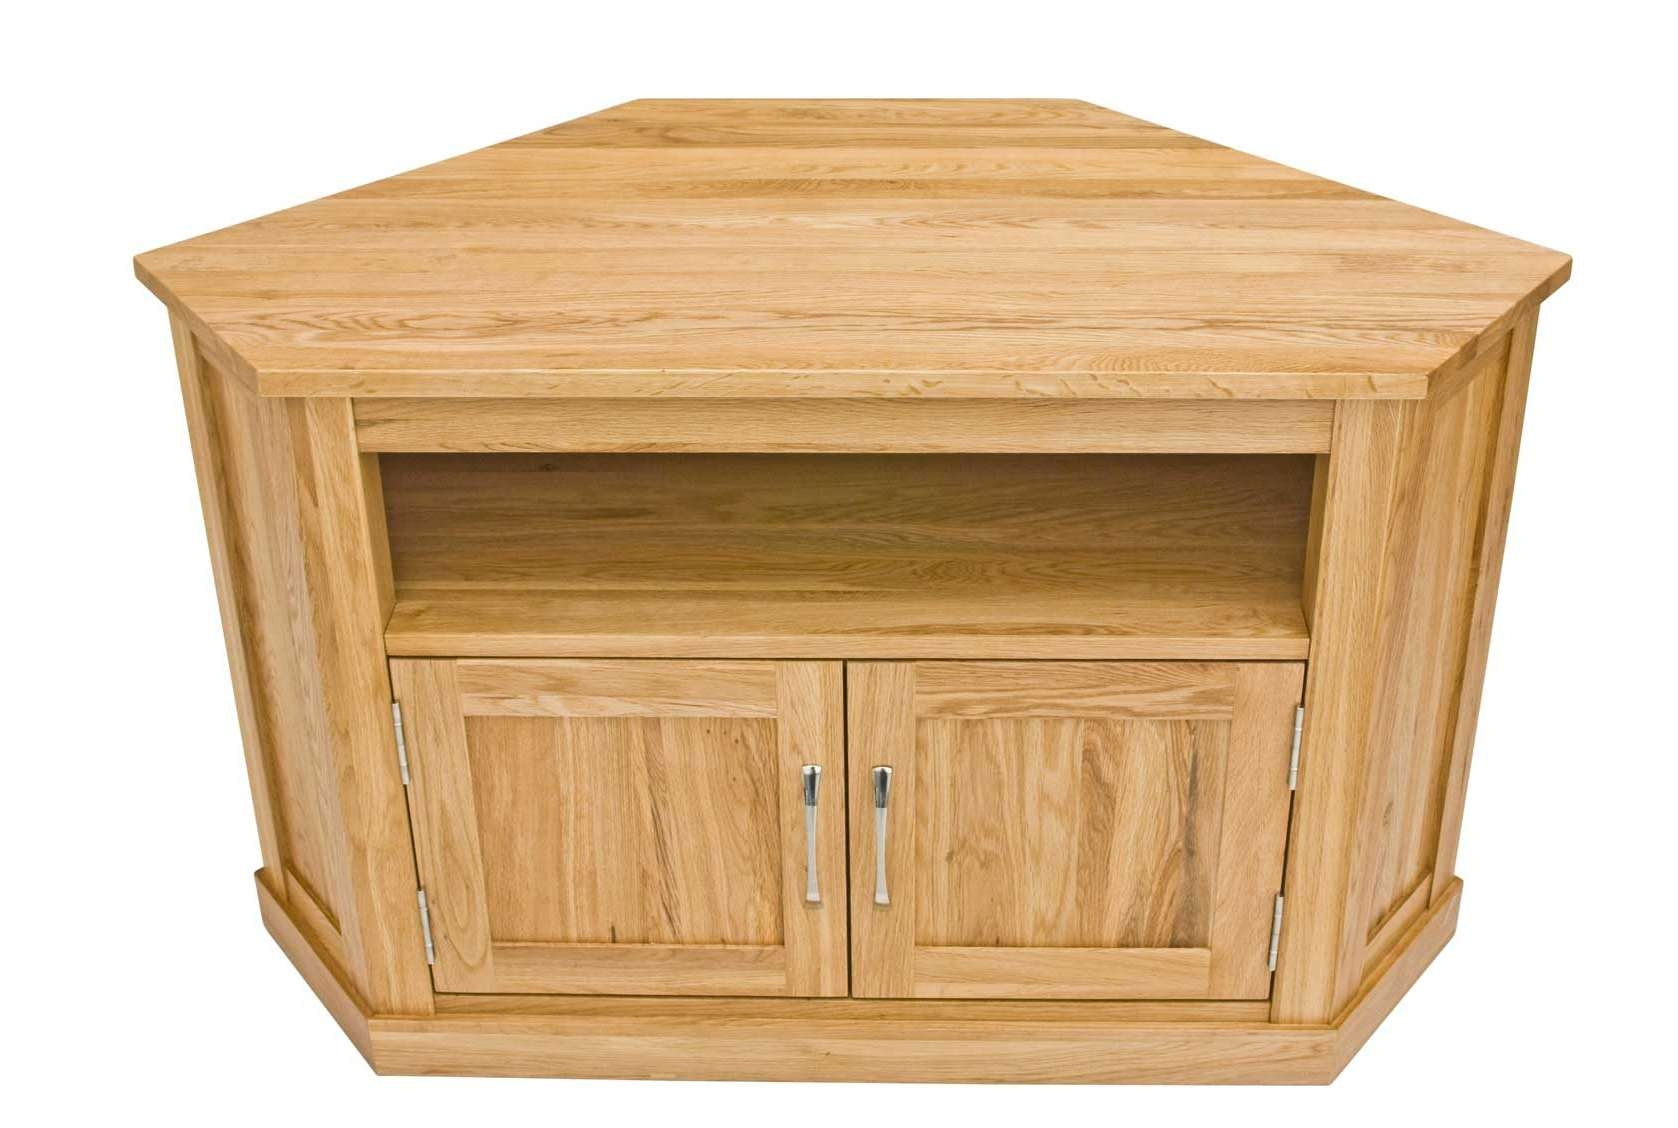 Classic Oak Corner Television Cabinet | Hampshire Furniture With Solid Wood Corner Tv Cabinets (View 10 of 20)